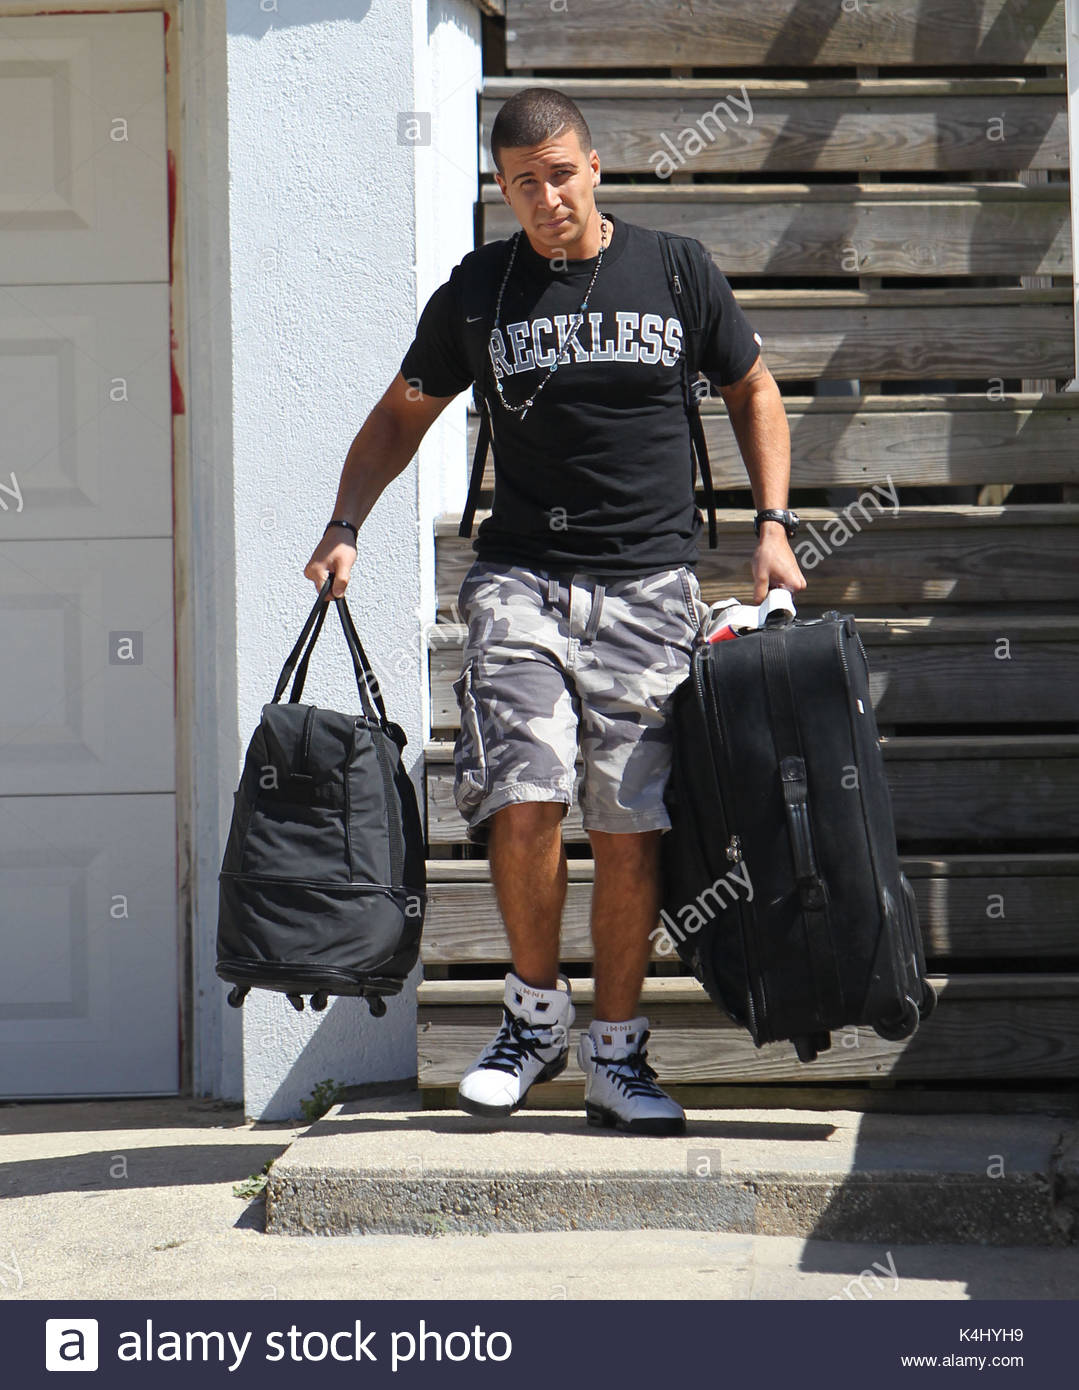 Why did vinny leave jersey shore